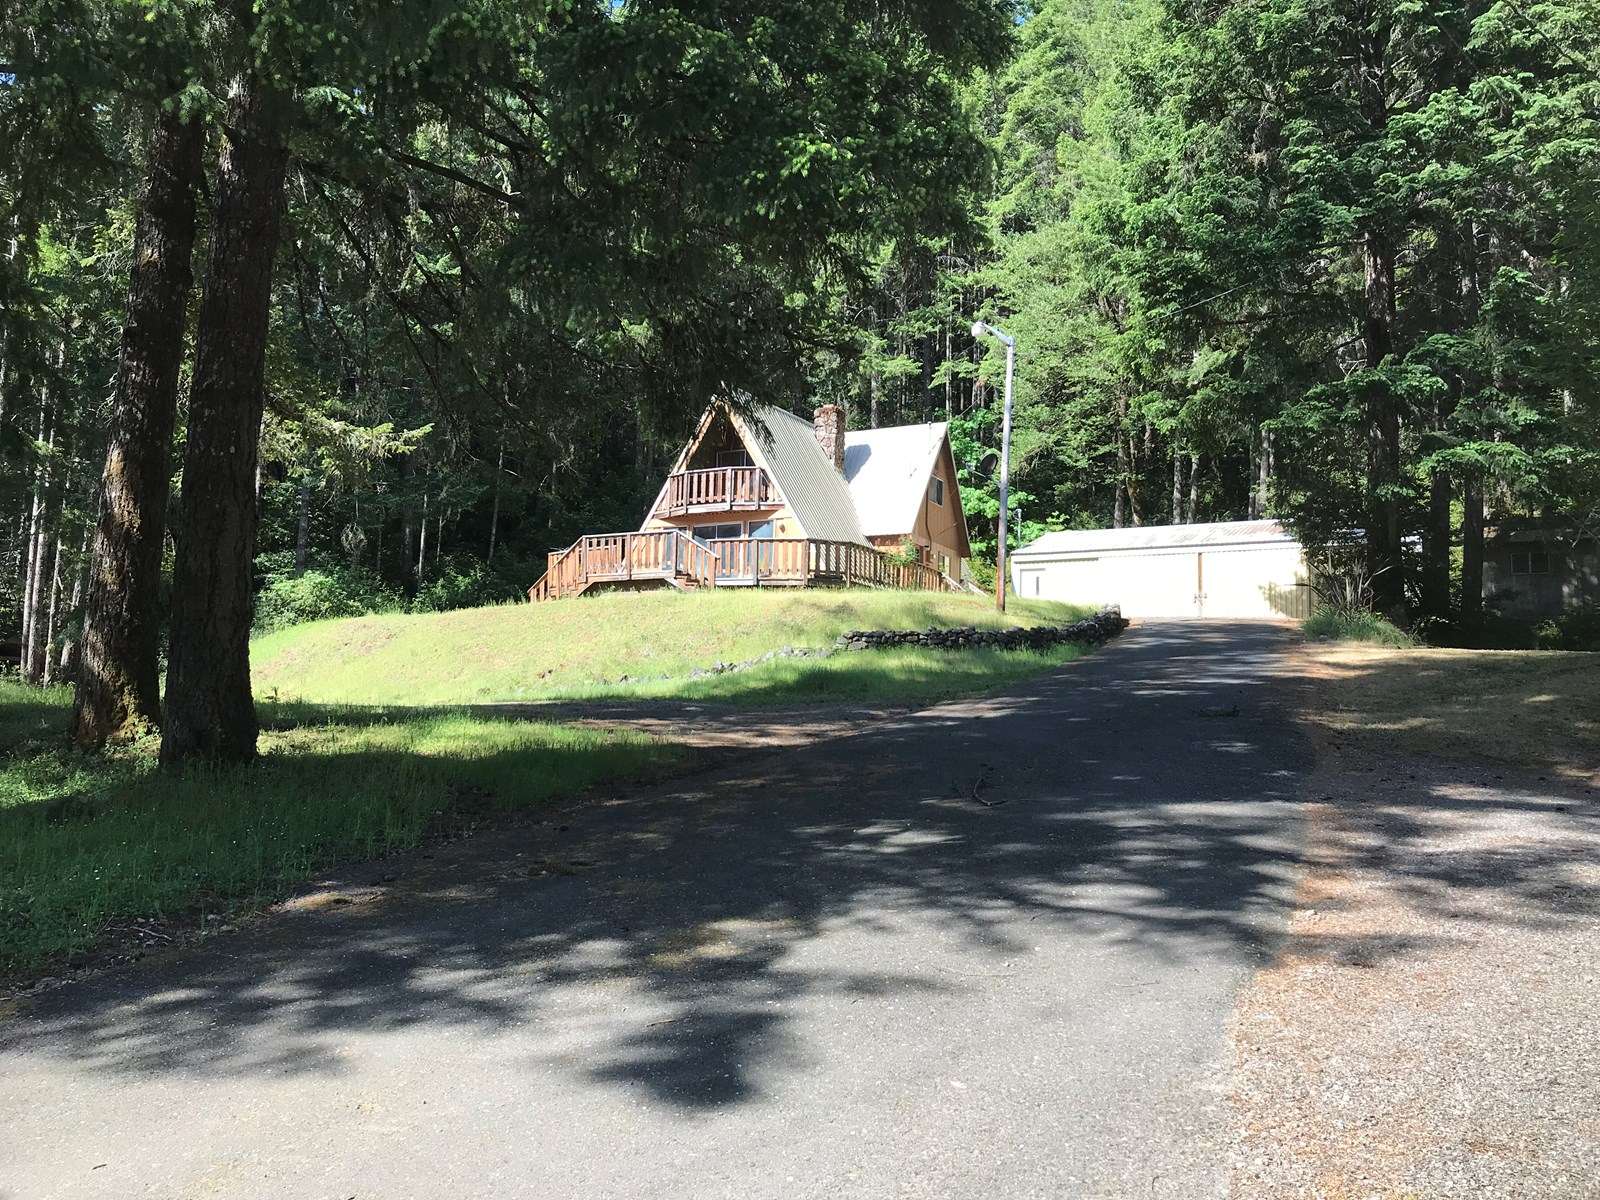 Cabin for Sale in Agness Oregon